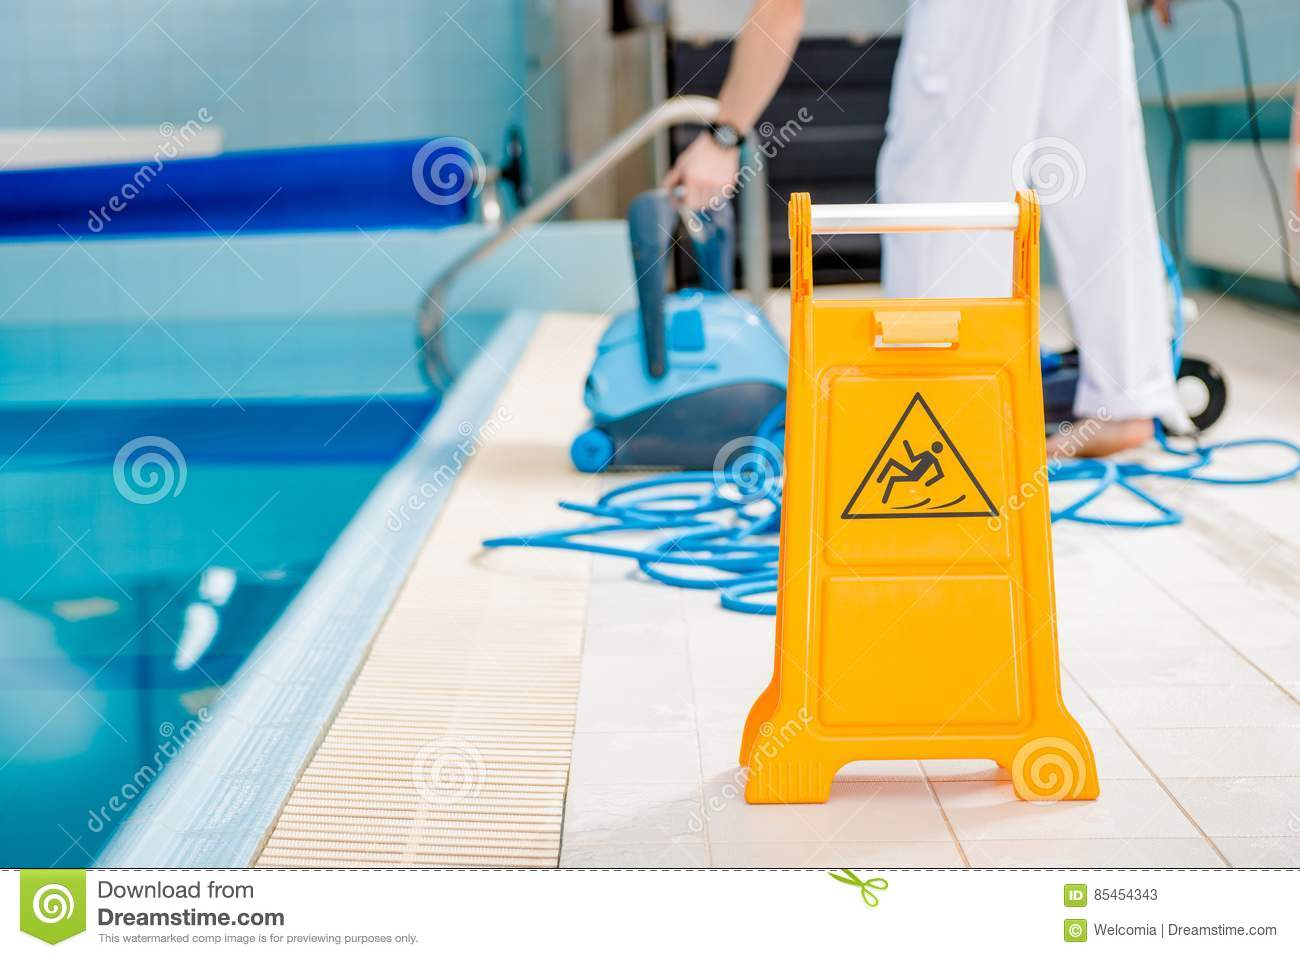 Swimming Pool Slippery Floor Stock Image Image Of Workplace - Tile floor slippery after cleaning